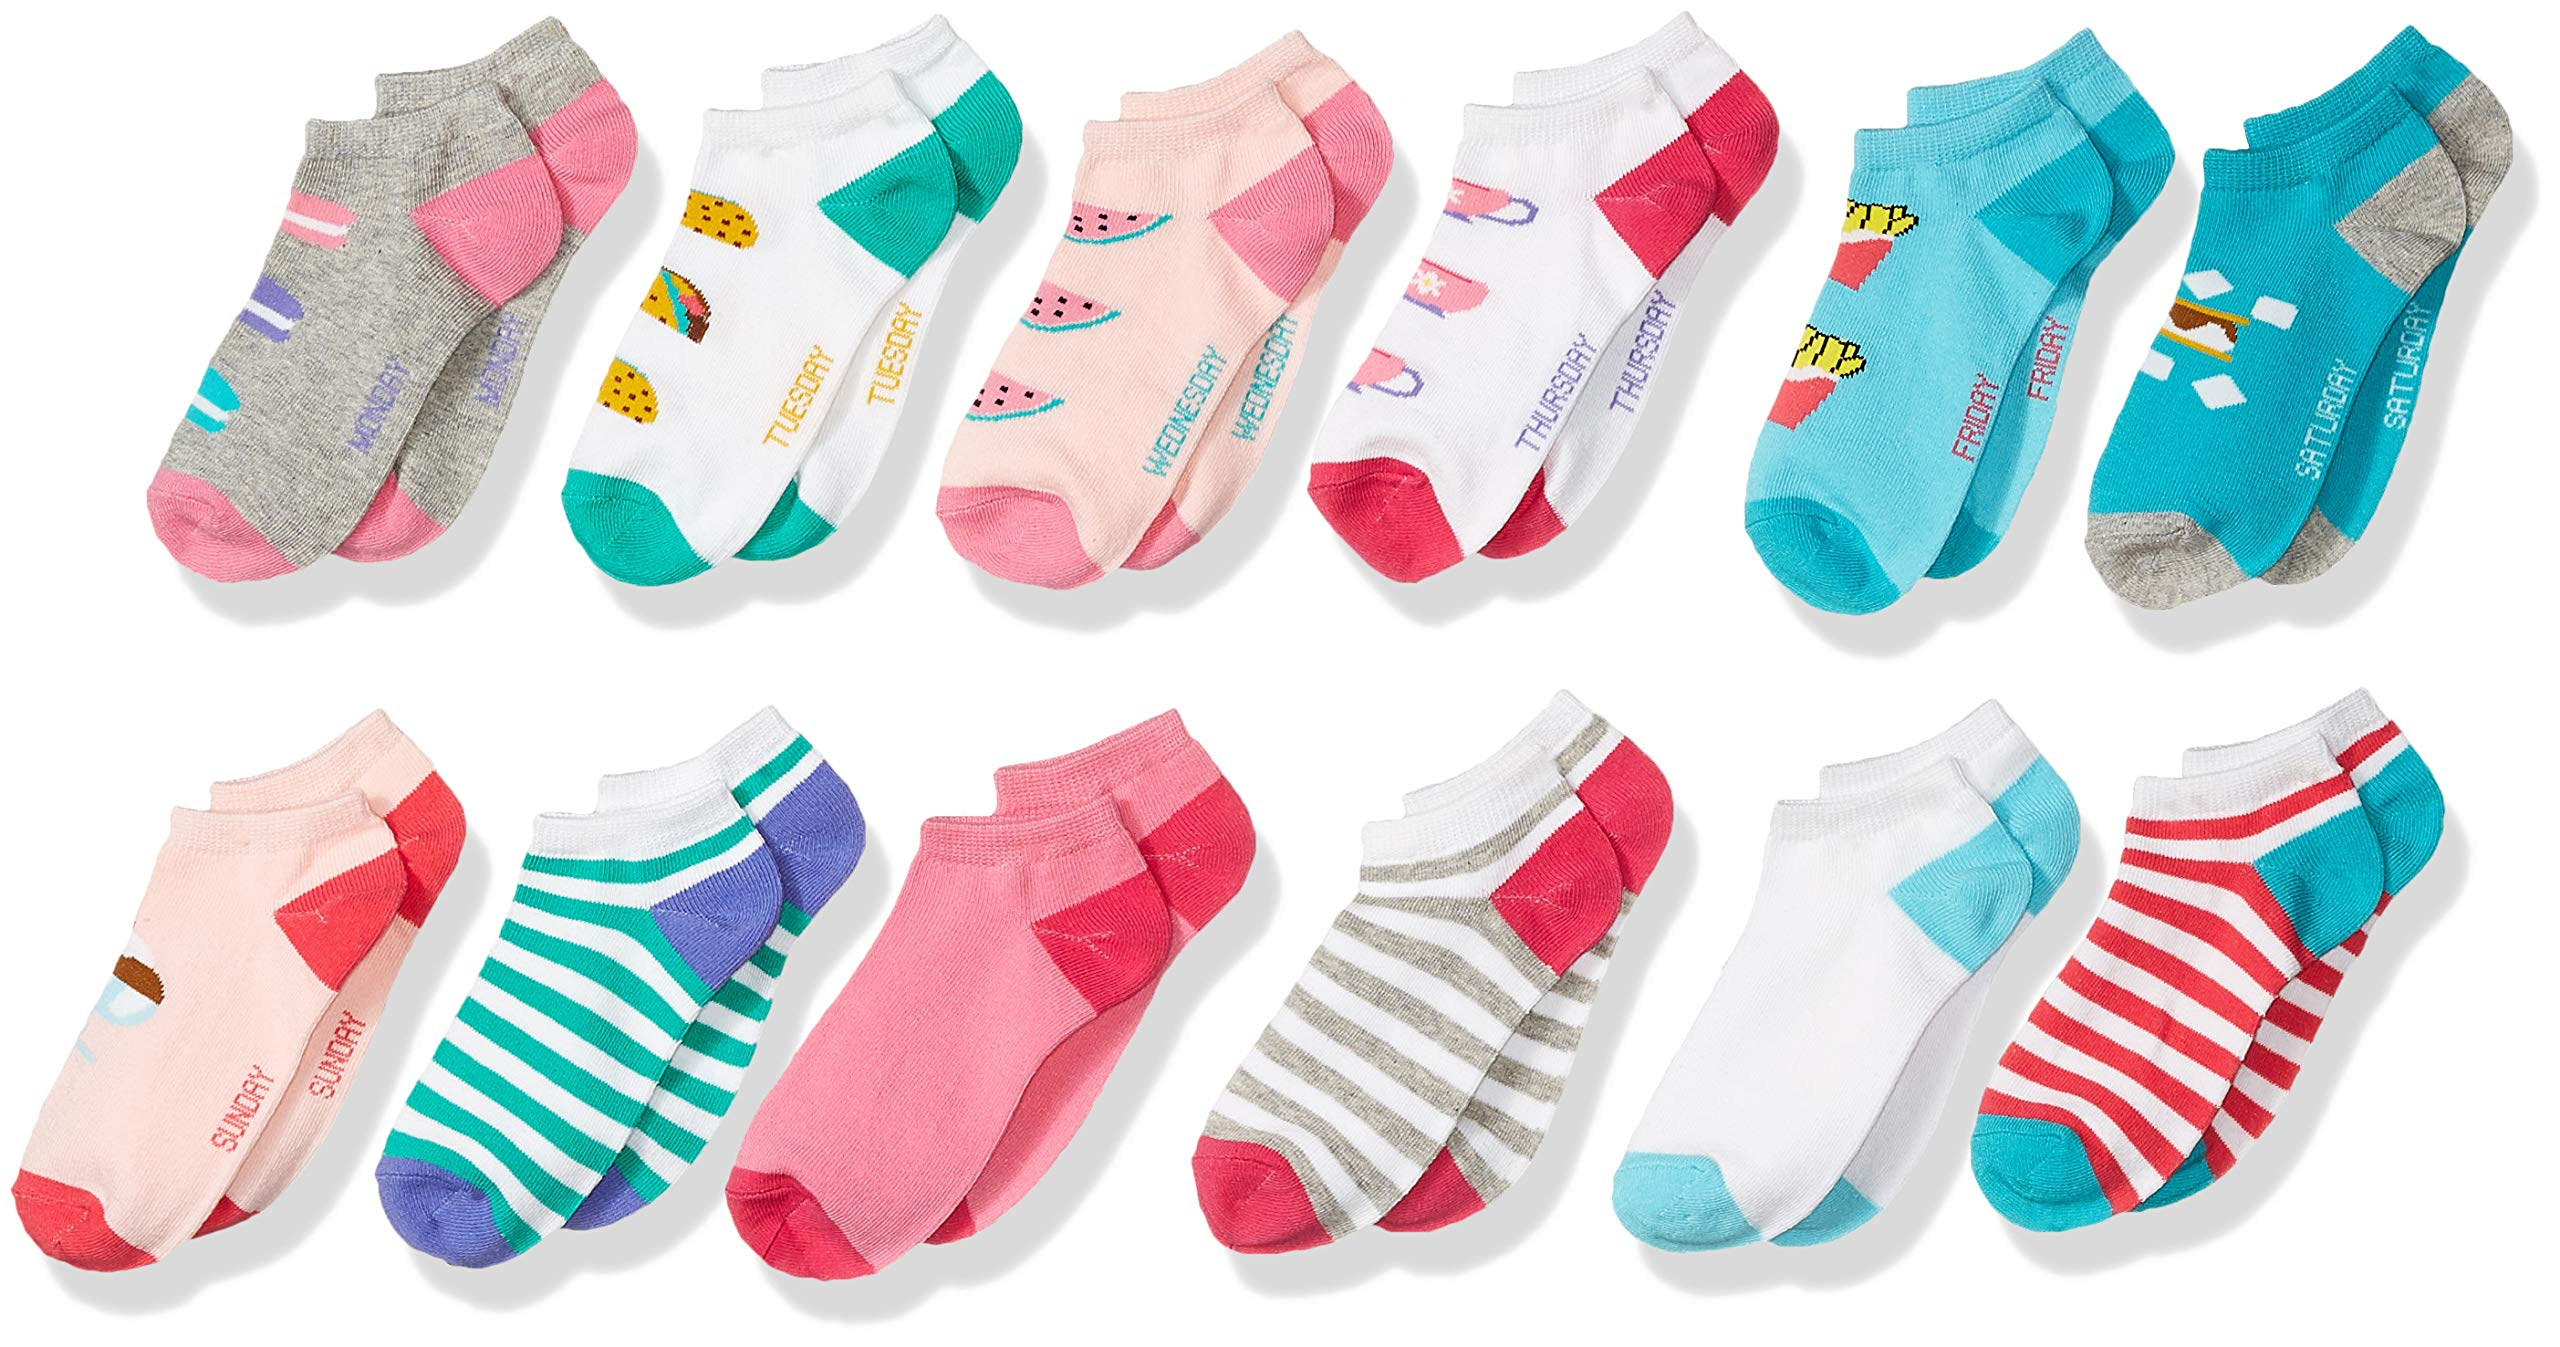 Spotted Zebra Kids' 12-Pack Low Cut Socks, Food Days of the Week , Large (3-6) by Spotted Zebra (Image #1)